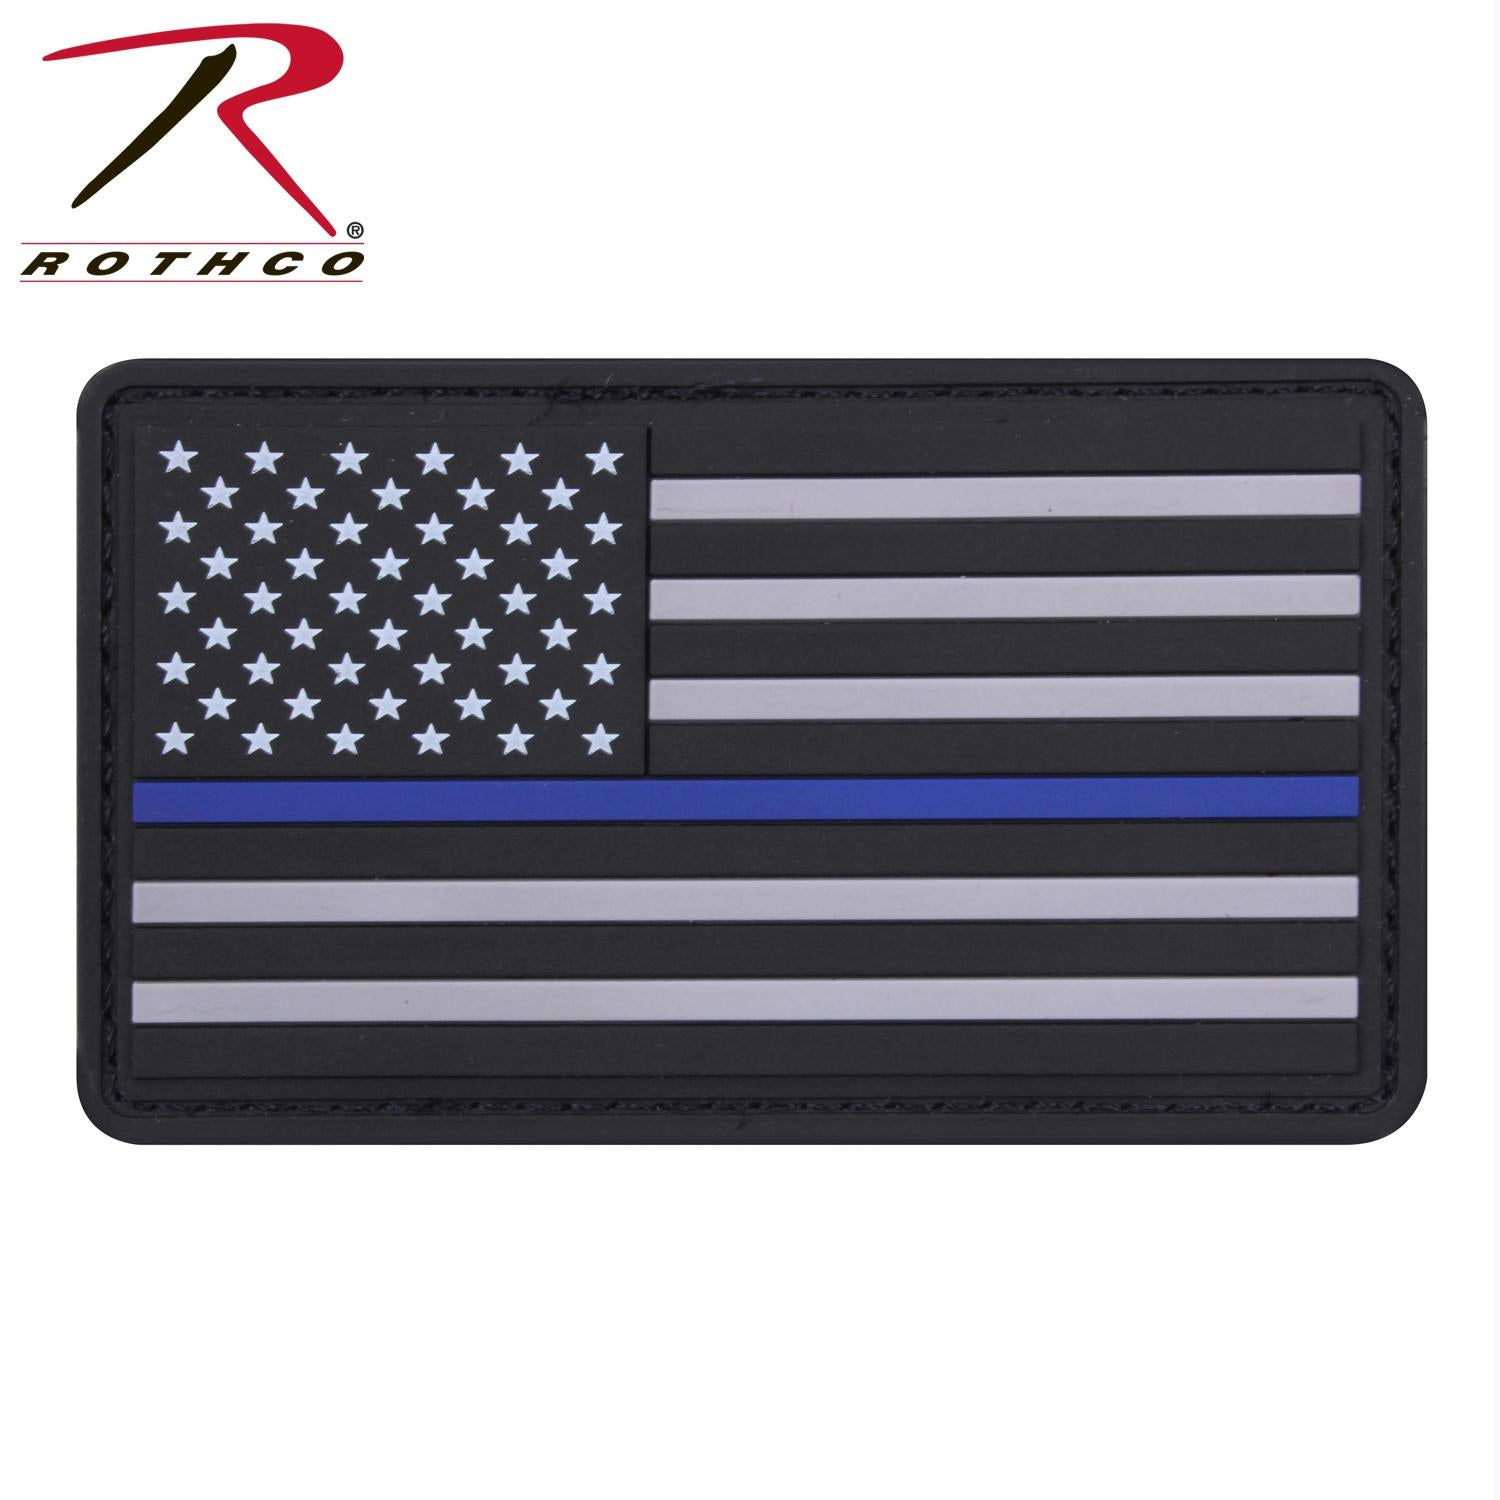 Rothco PVC Thin Blue Line Flag Patch